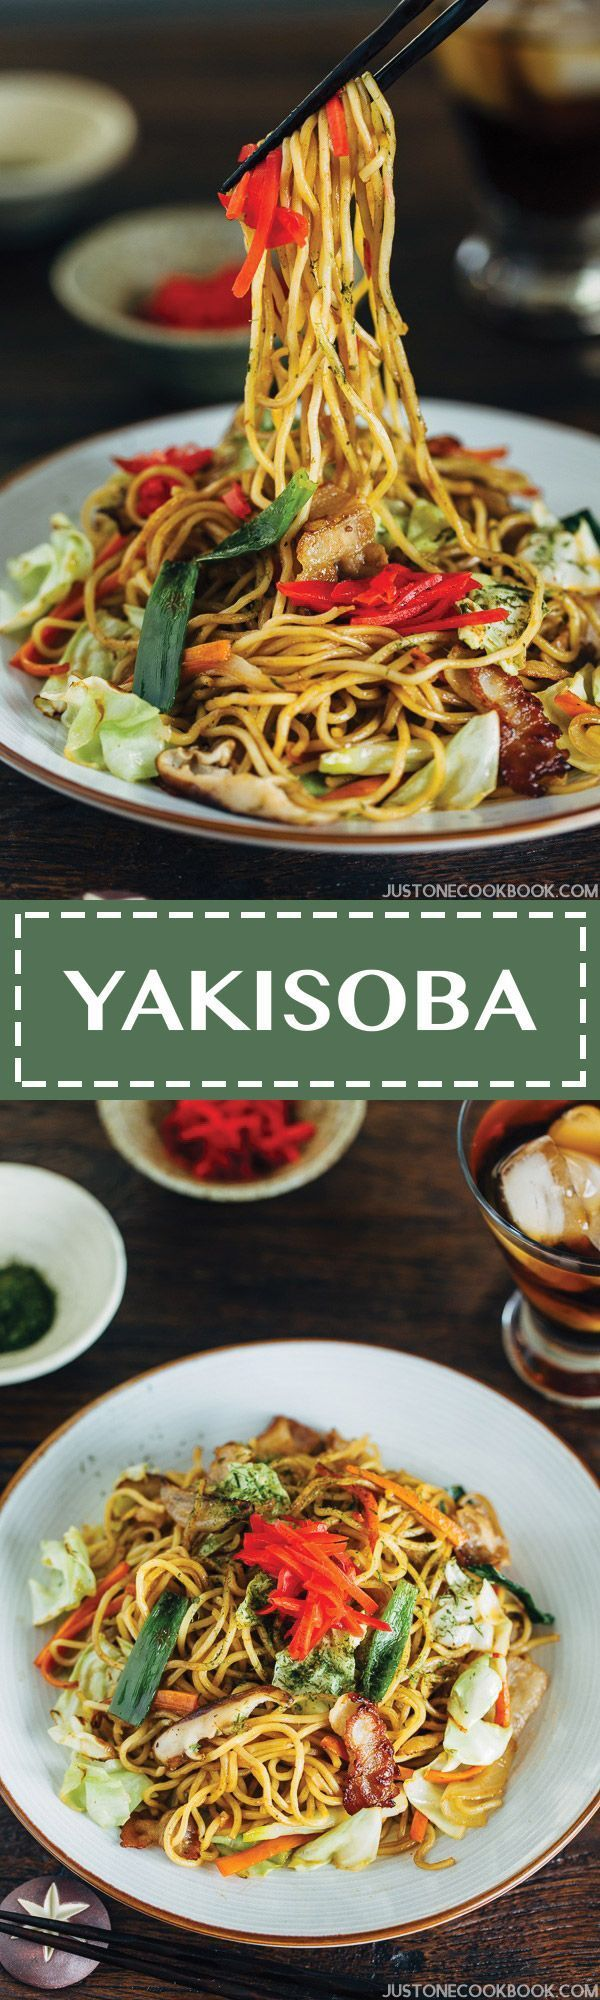 Classic Japanese yakisoba recipe, instead of soy sauce authentic yakisoba uses thick sweet sauce similar to Worcestershire sauce.